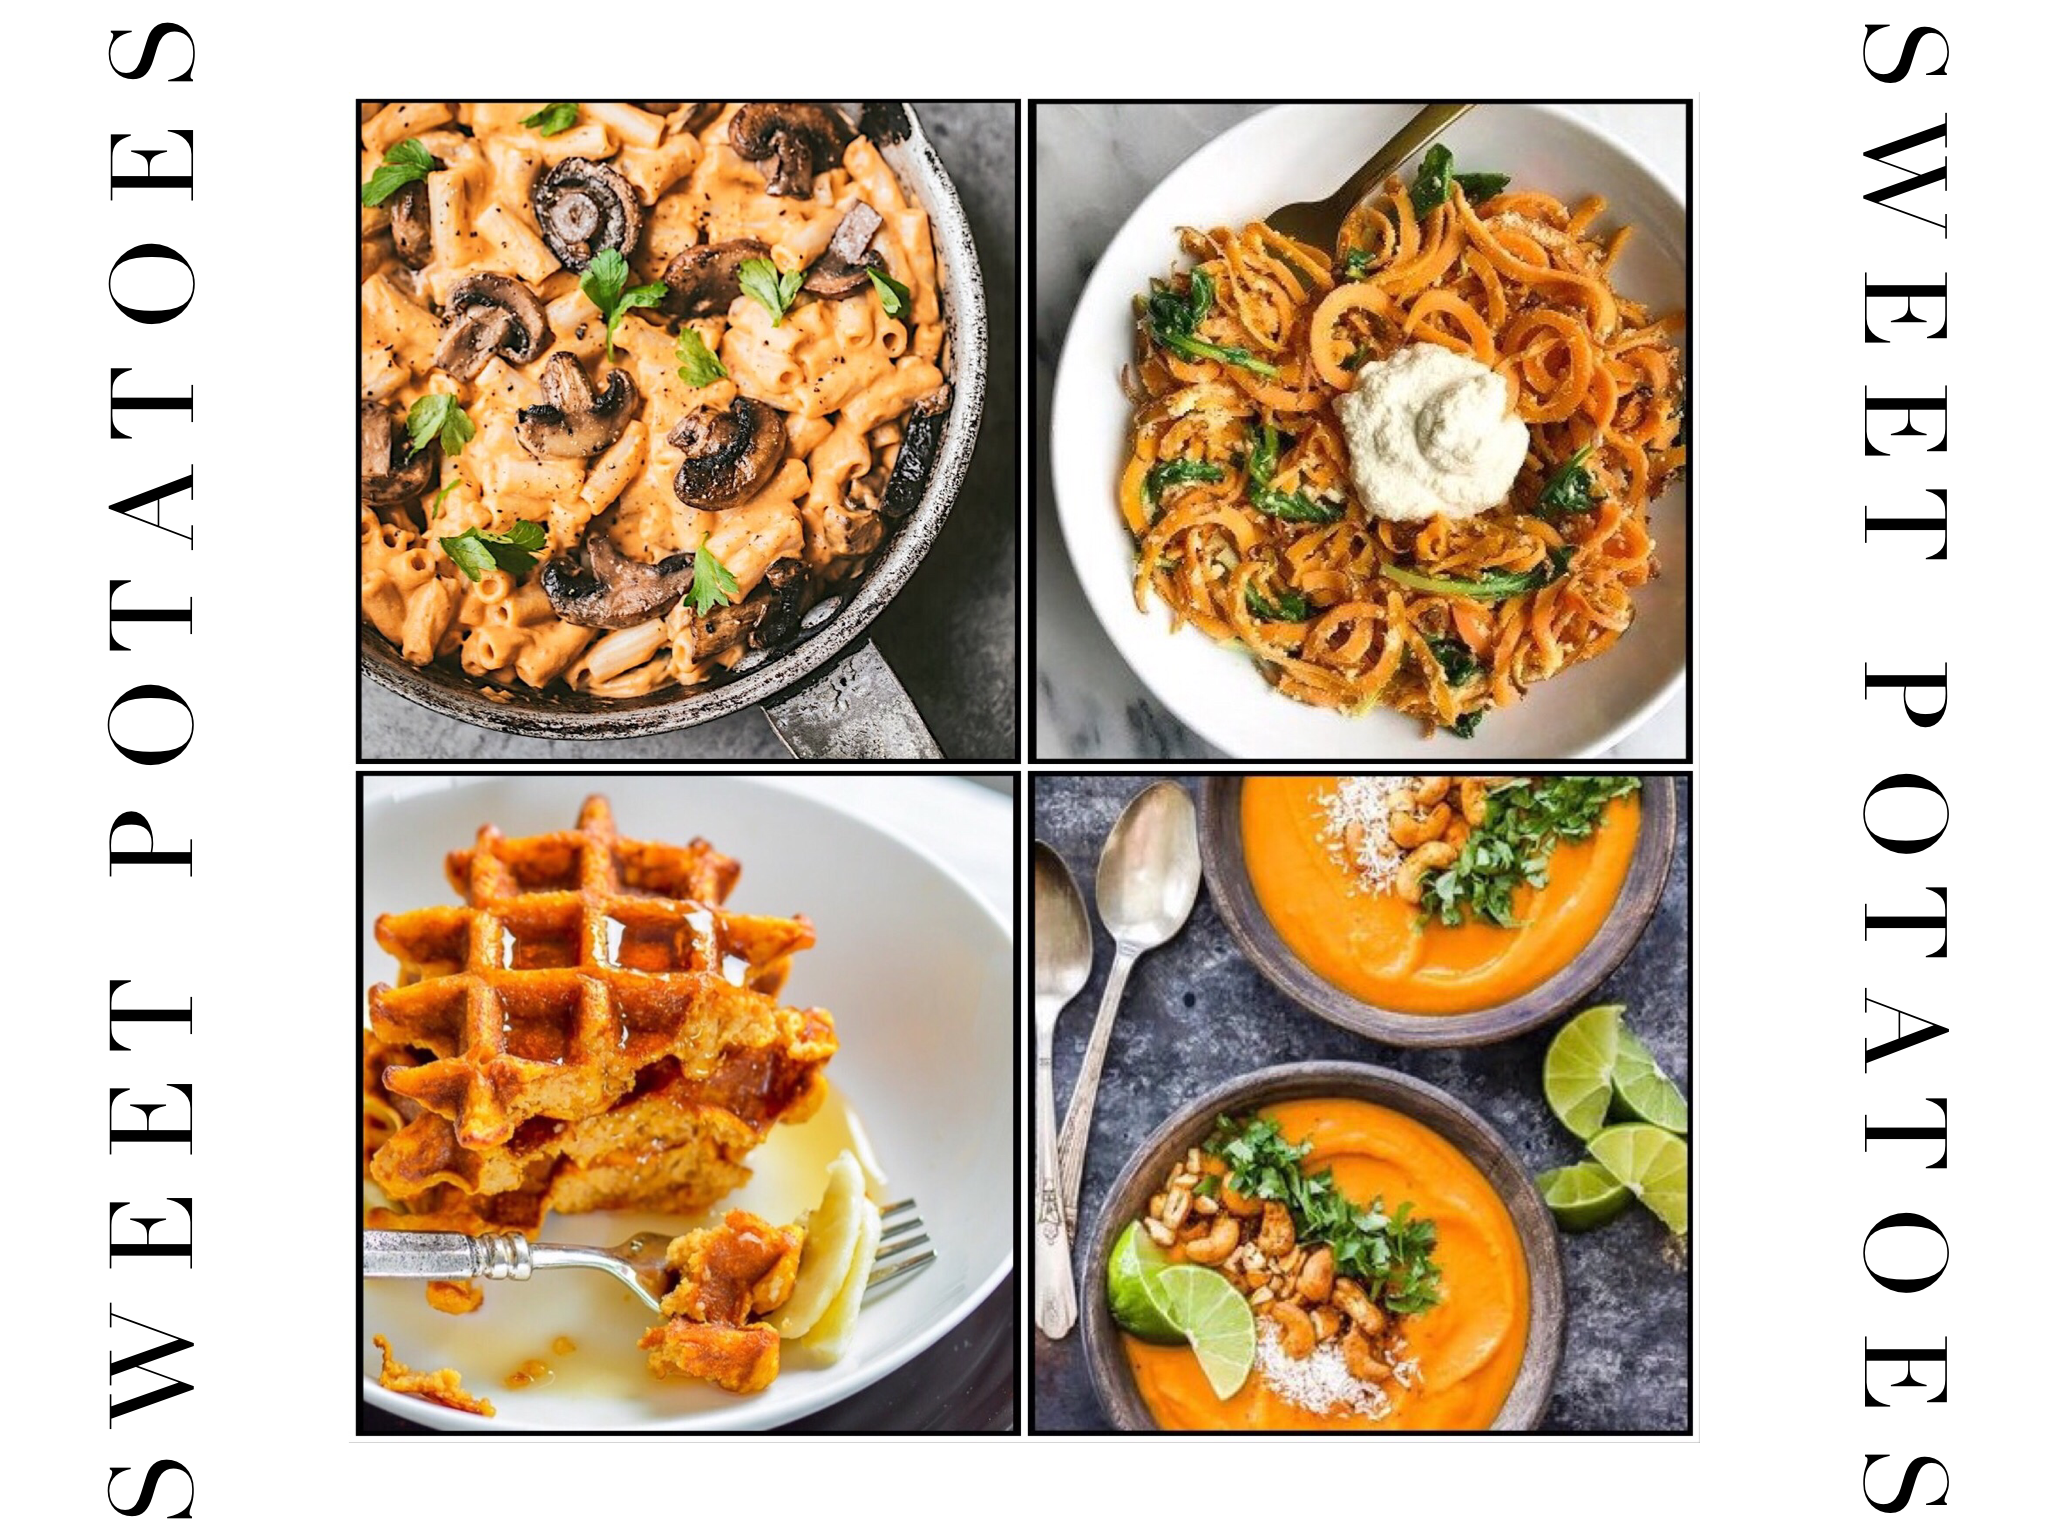 Sweet Potatoes - Sweet potatoes hit their peak just as the weather starts to cool, so they are rich in flavor and nutrition in autumn. It's a little similar to the pumpkins, very healthy, and can easily be turned into a sweet treat or a warming meal.